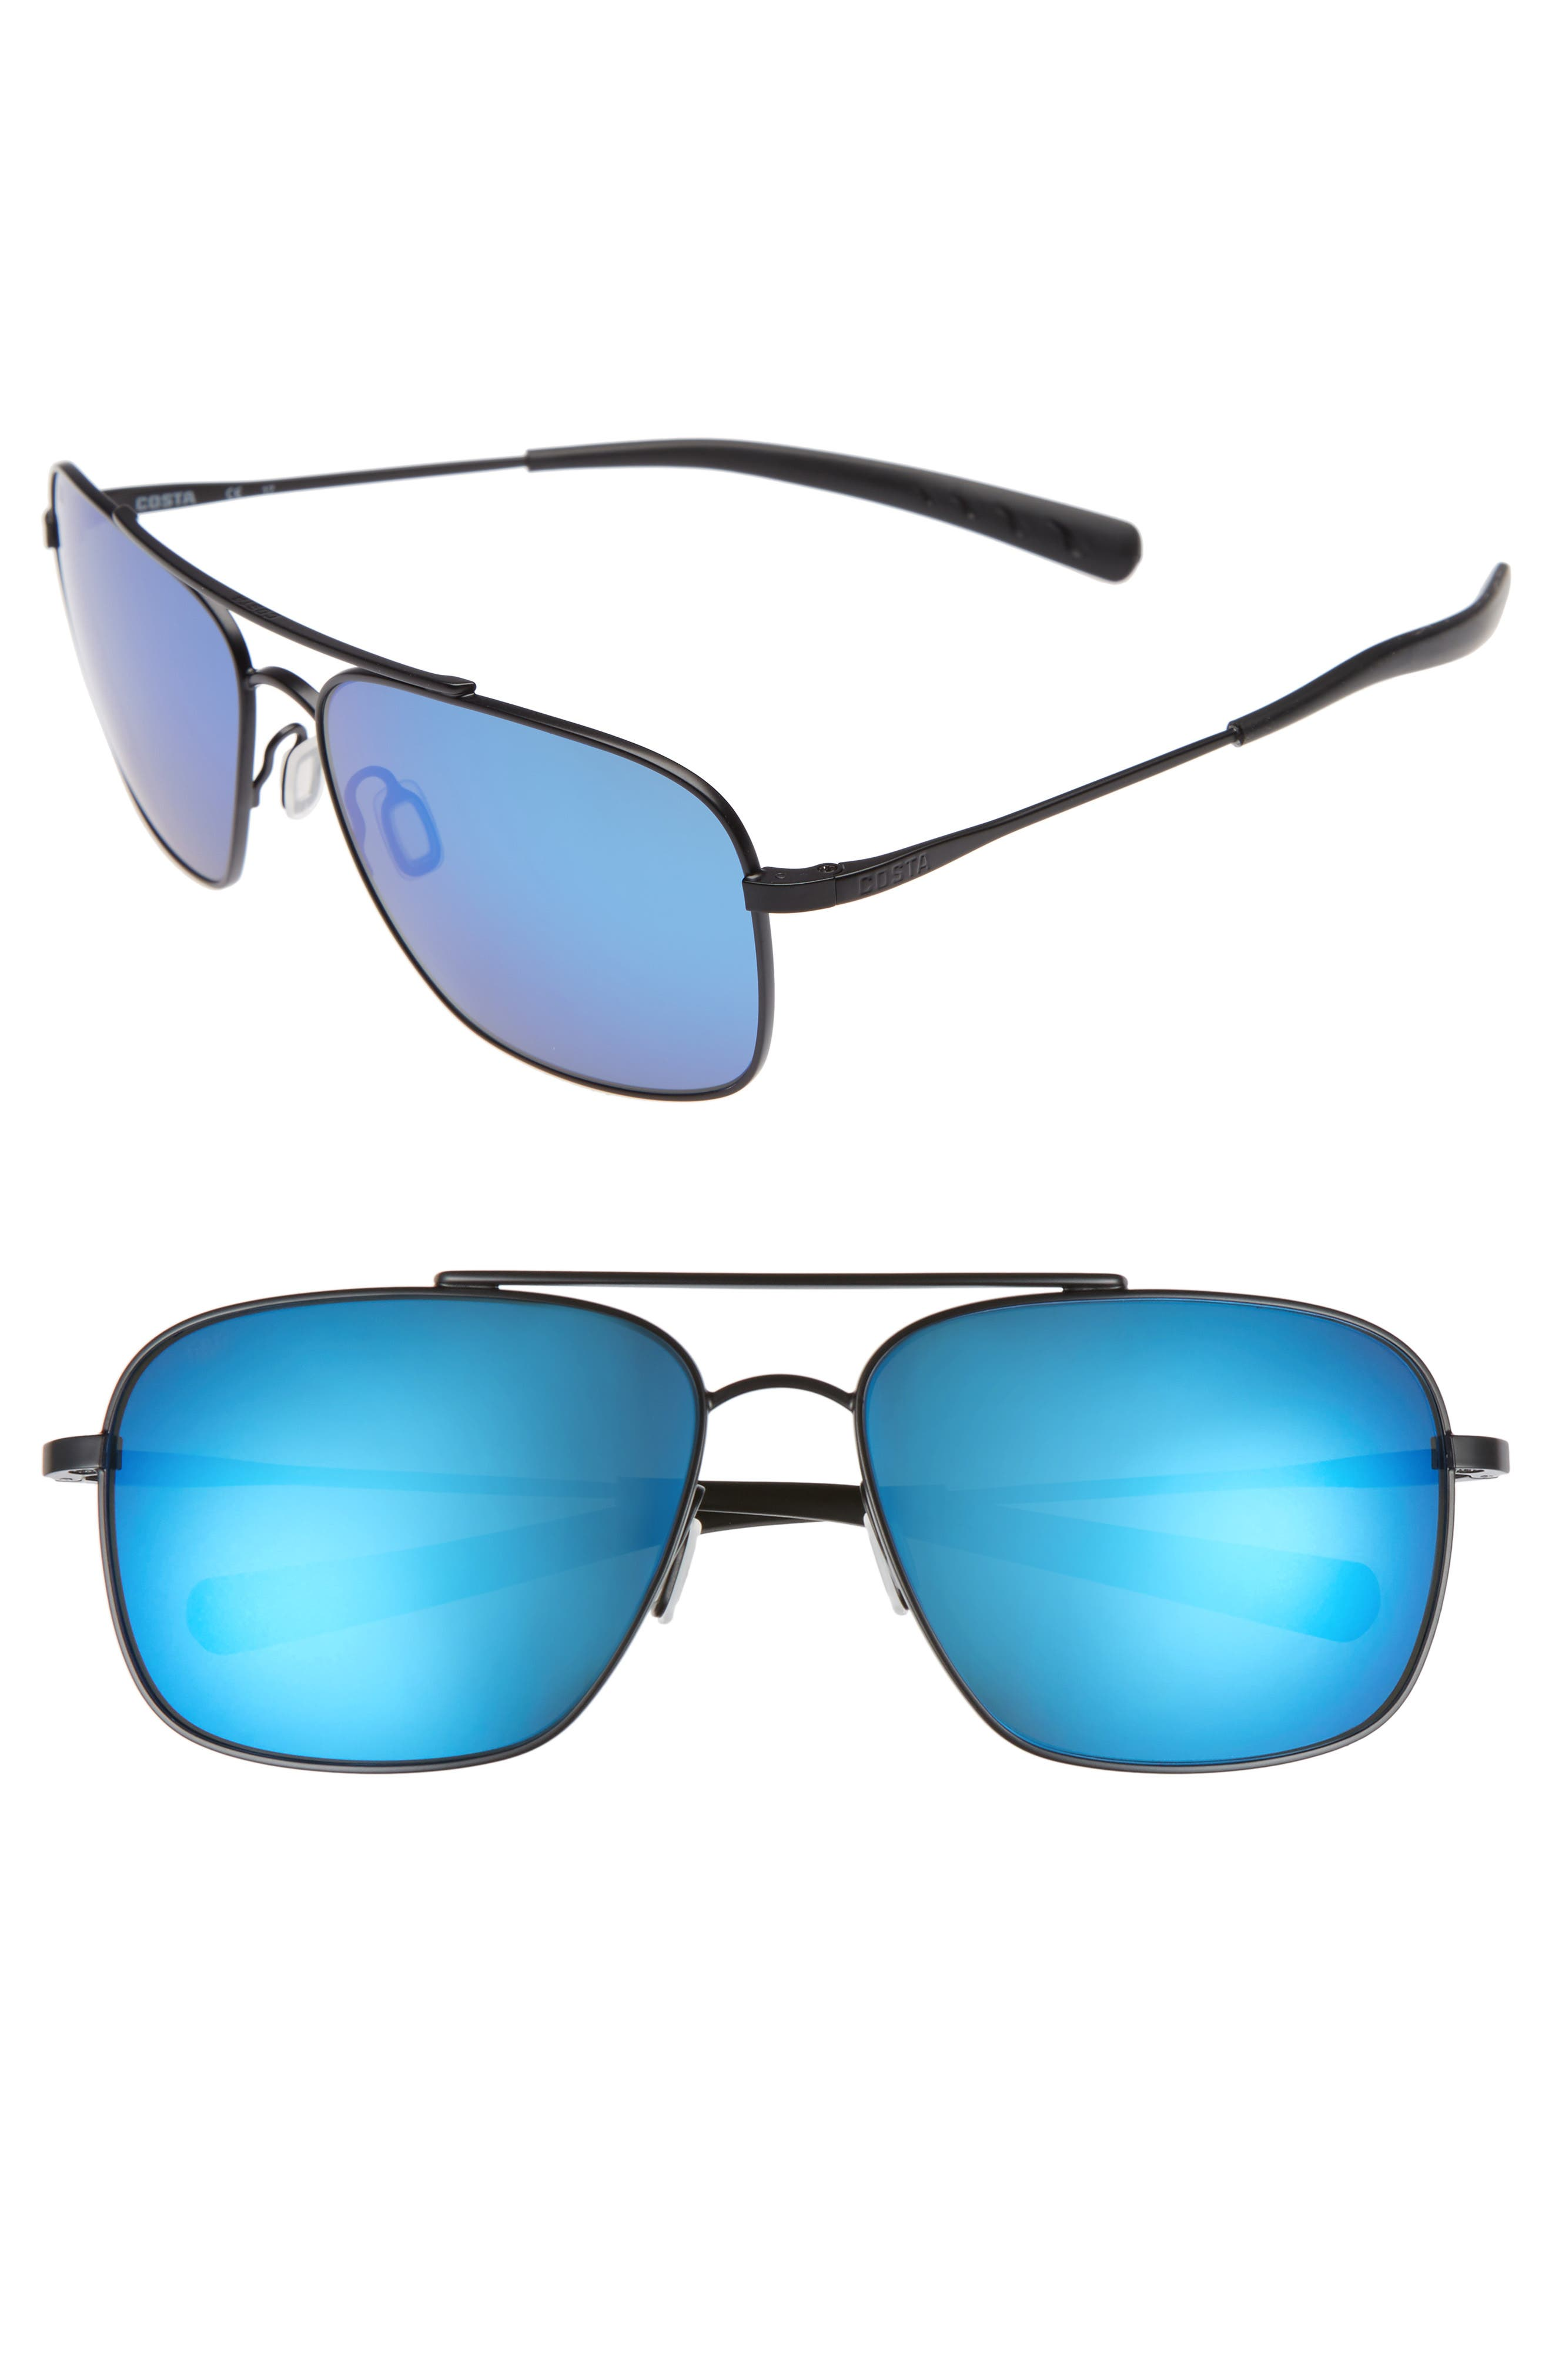 Canaveral 60mm Polarized Sunglasses,                             Main thumbnail 1, color,                             Satin Black/ Blue Mirror